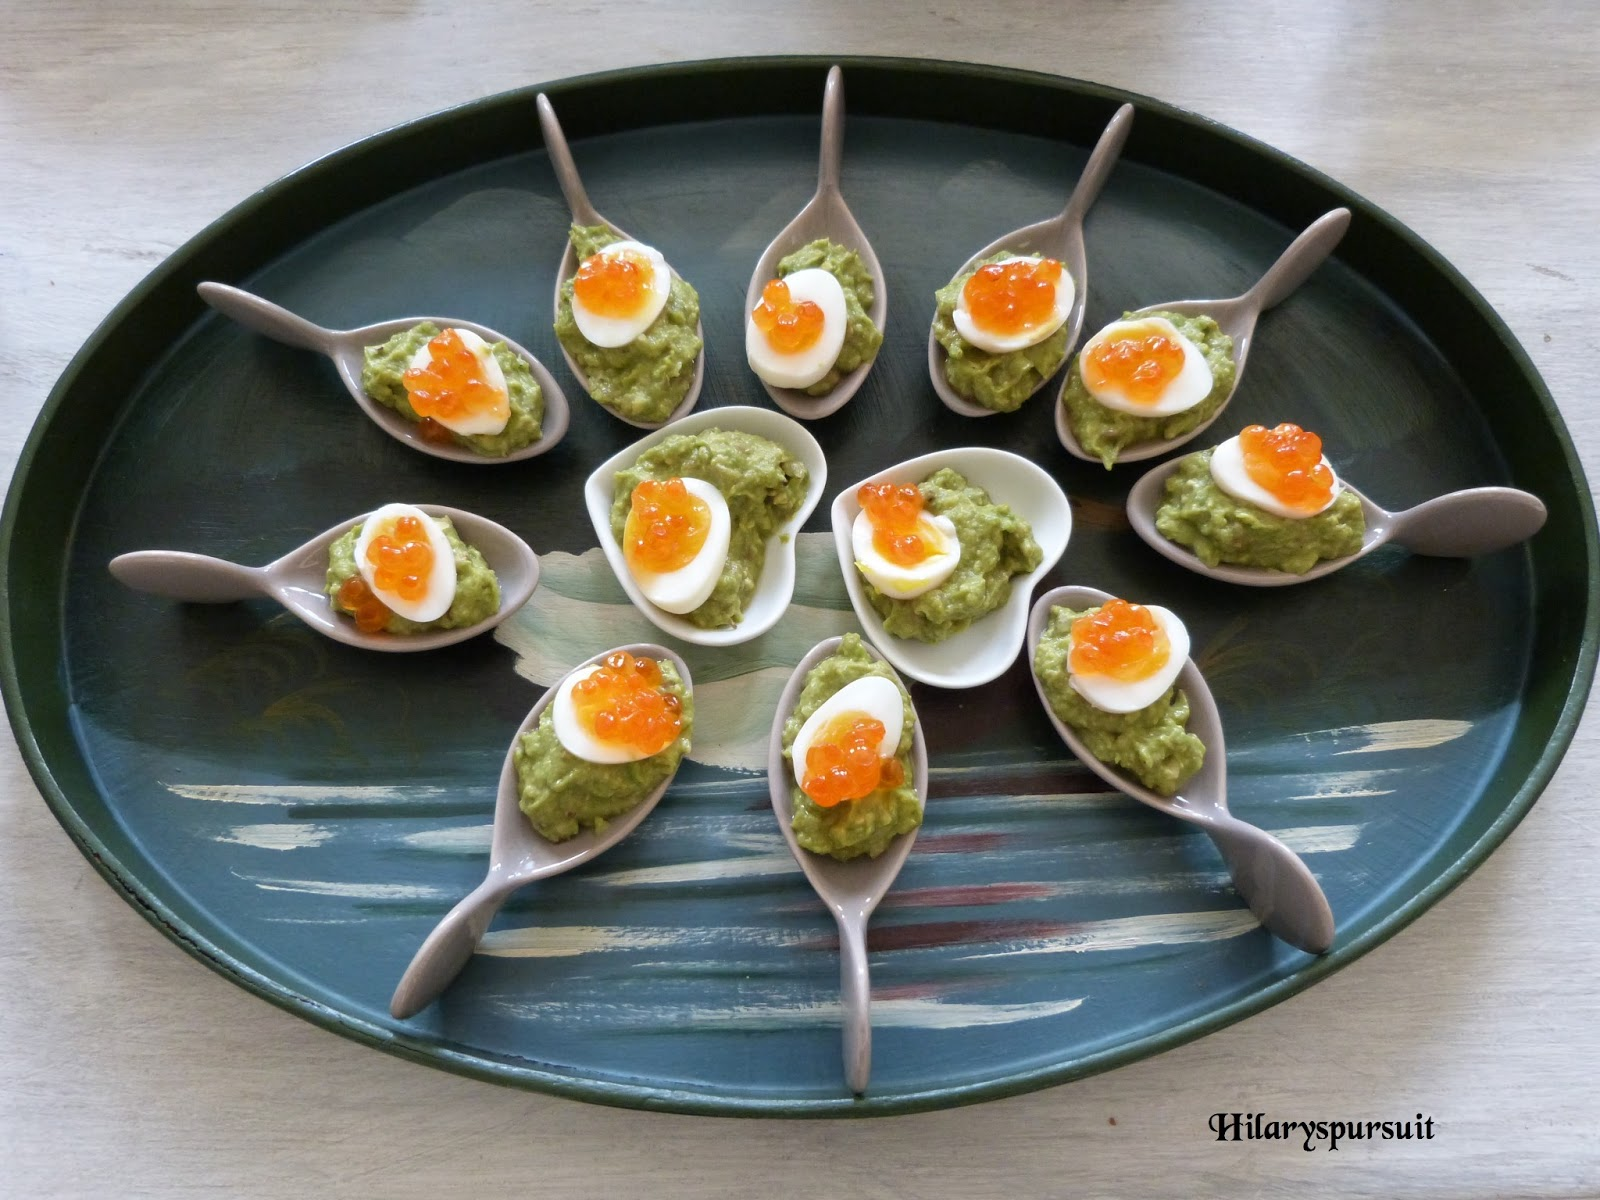 dans la cuisine d 39 hilary bouch es oeuf de cailles mollet au guacamole soft boiled quail eggs. Black Bedroom Furniture Sets. Home Design Ideas